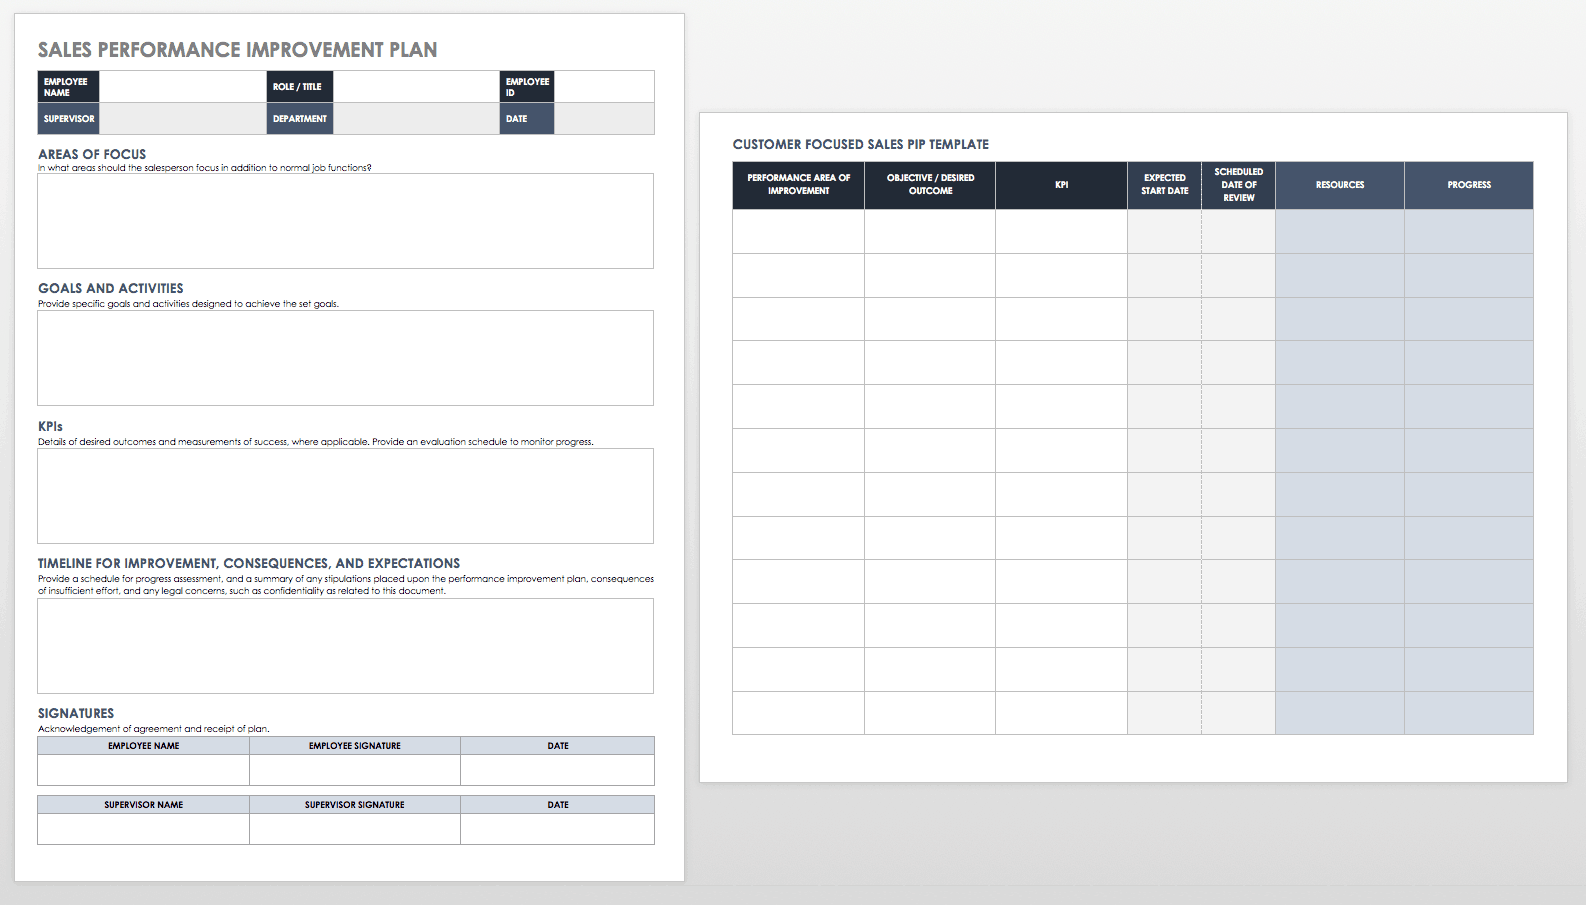 Sales Performance Improvement Plan Template